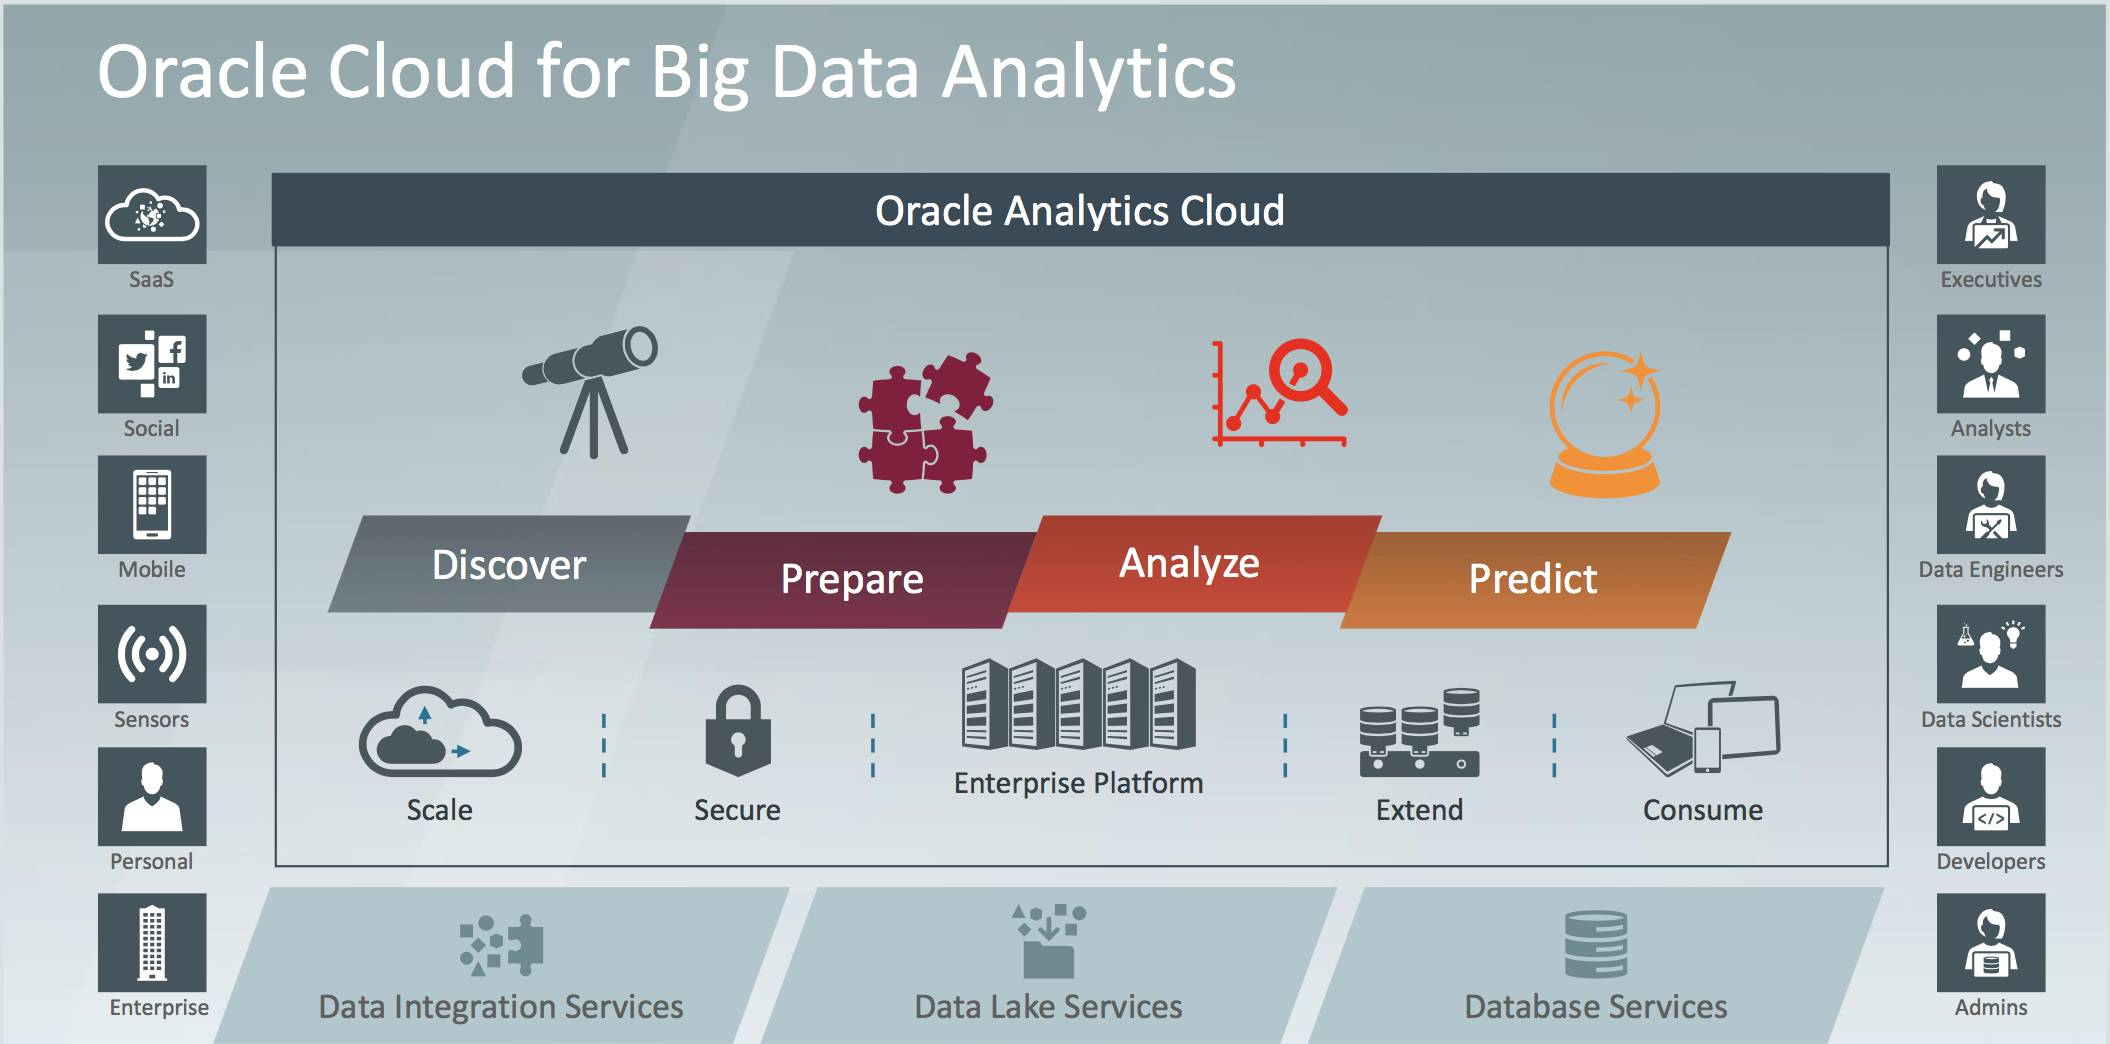 Oracle Cloud for Big Data